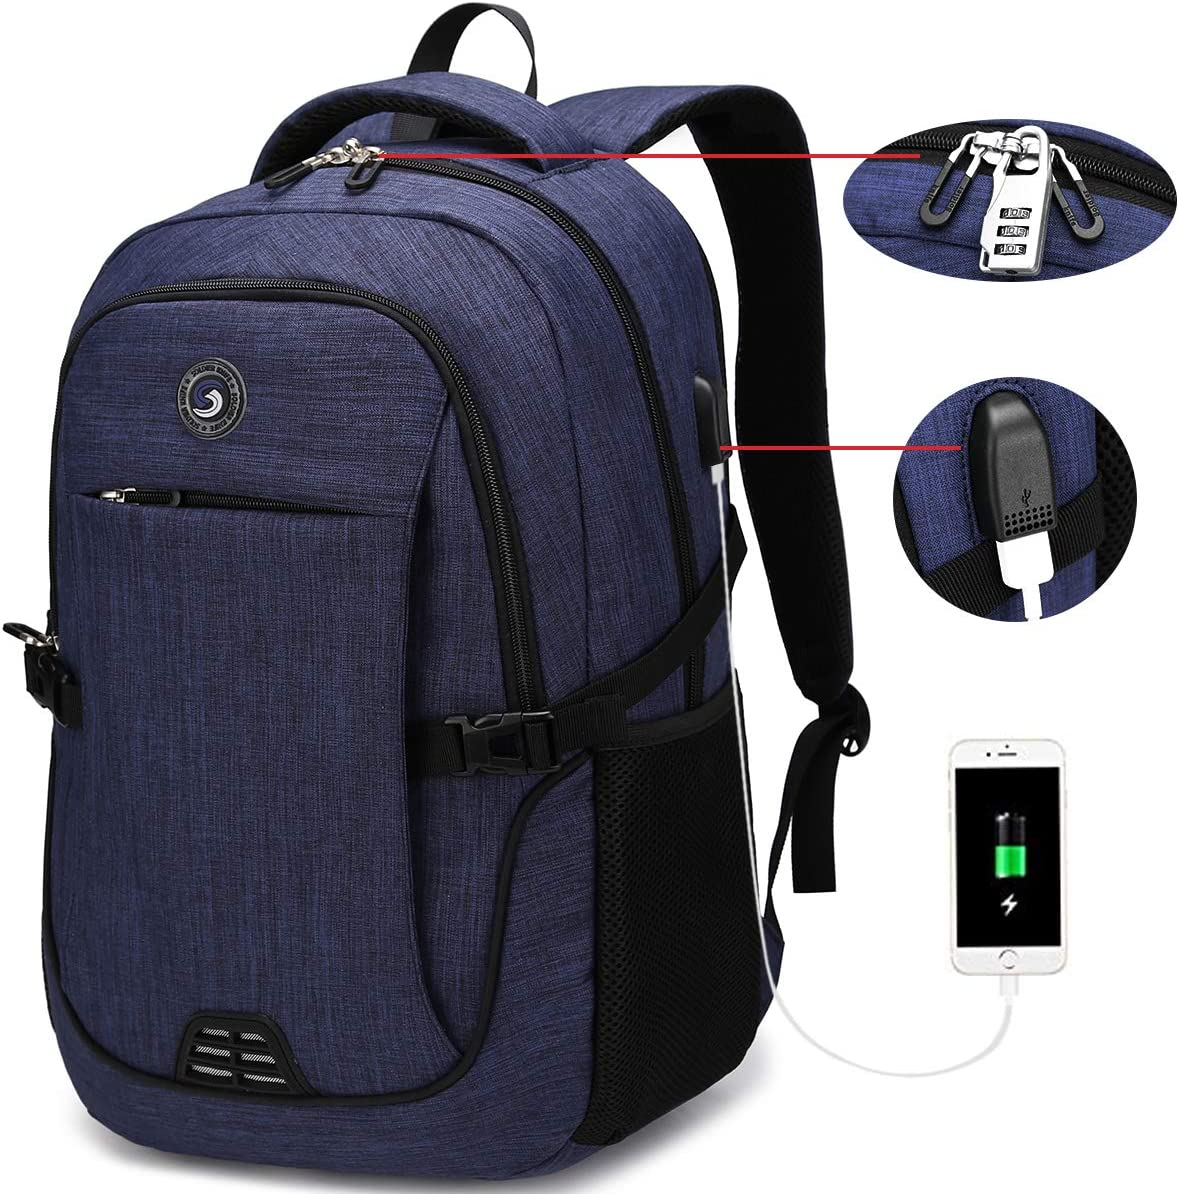 SOLDIERKNIFE Durable Waterproof Anti Theft Laptop Backpack Travel Backpacks Bookbag with usb Charging Port for Women & Men School College Students Backpack Fits 15.6 Inch Laptop Royal Blue